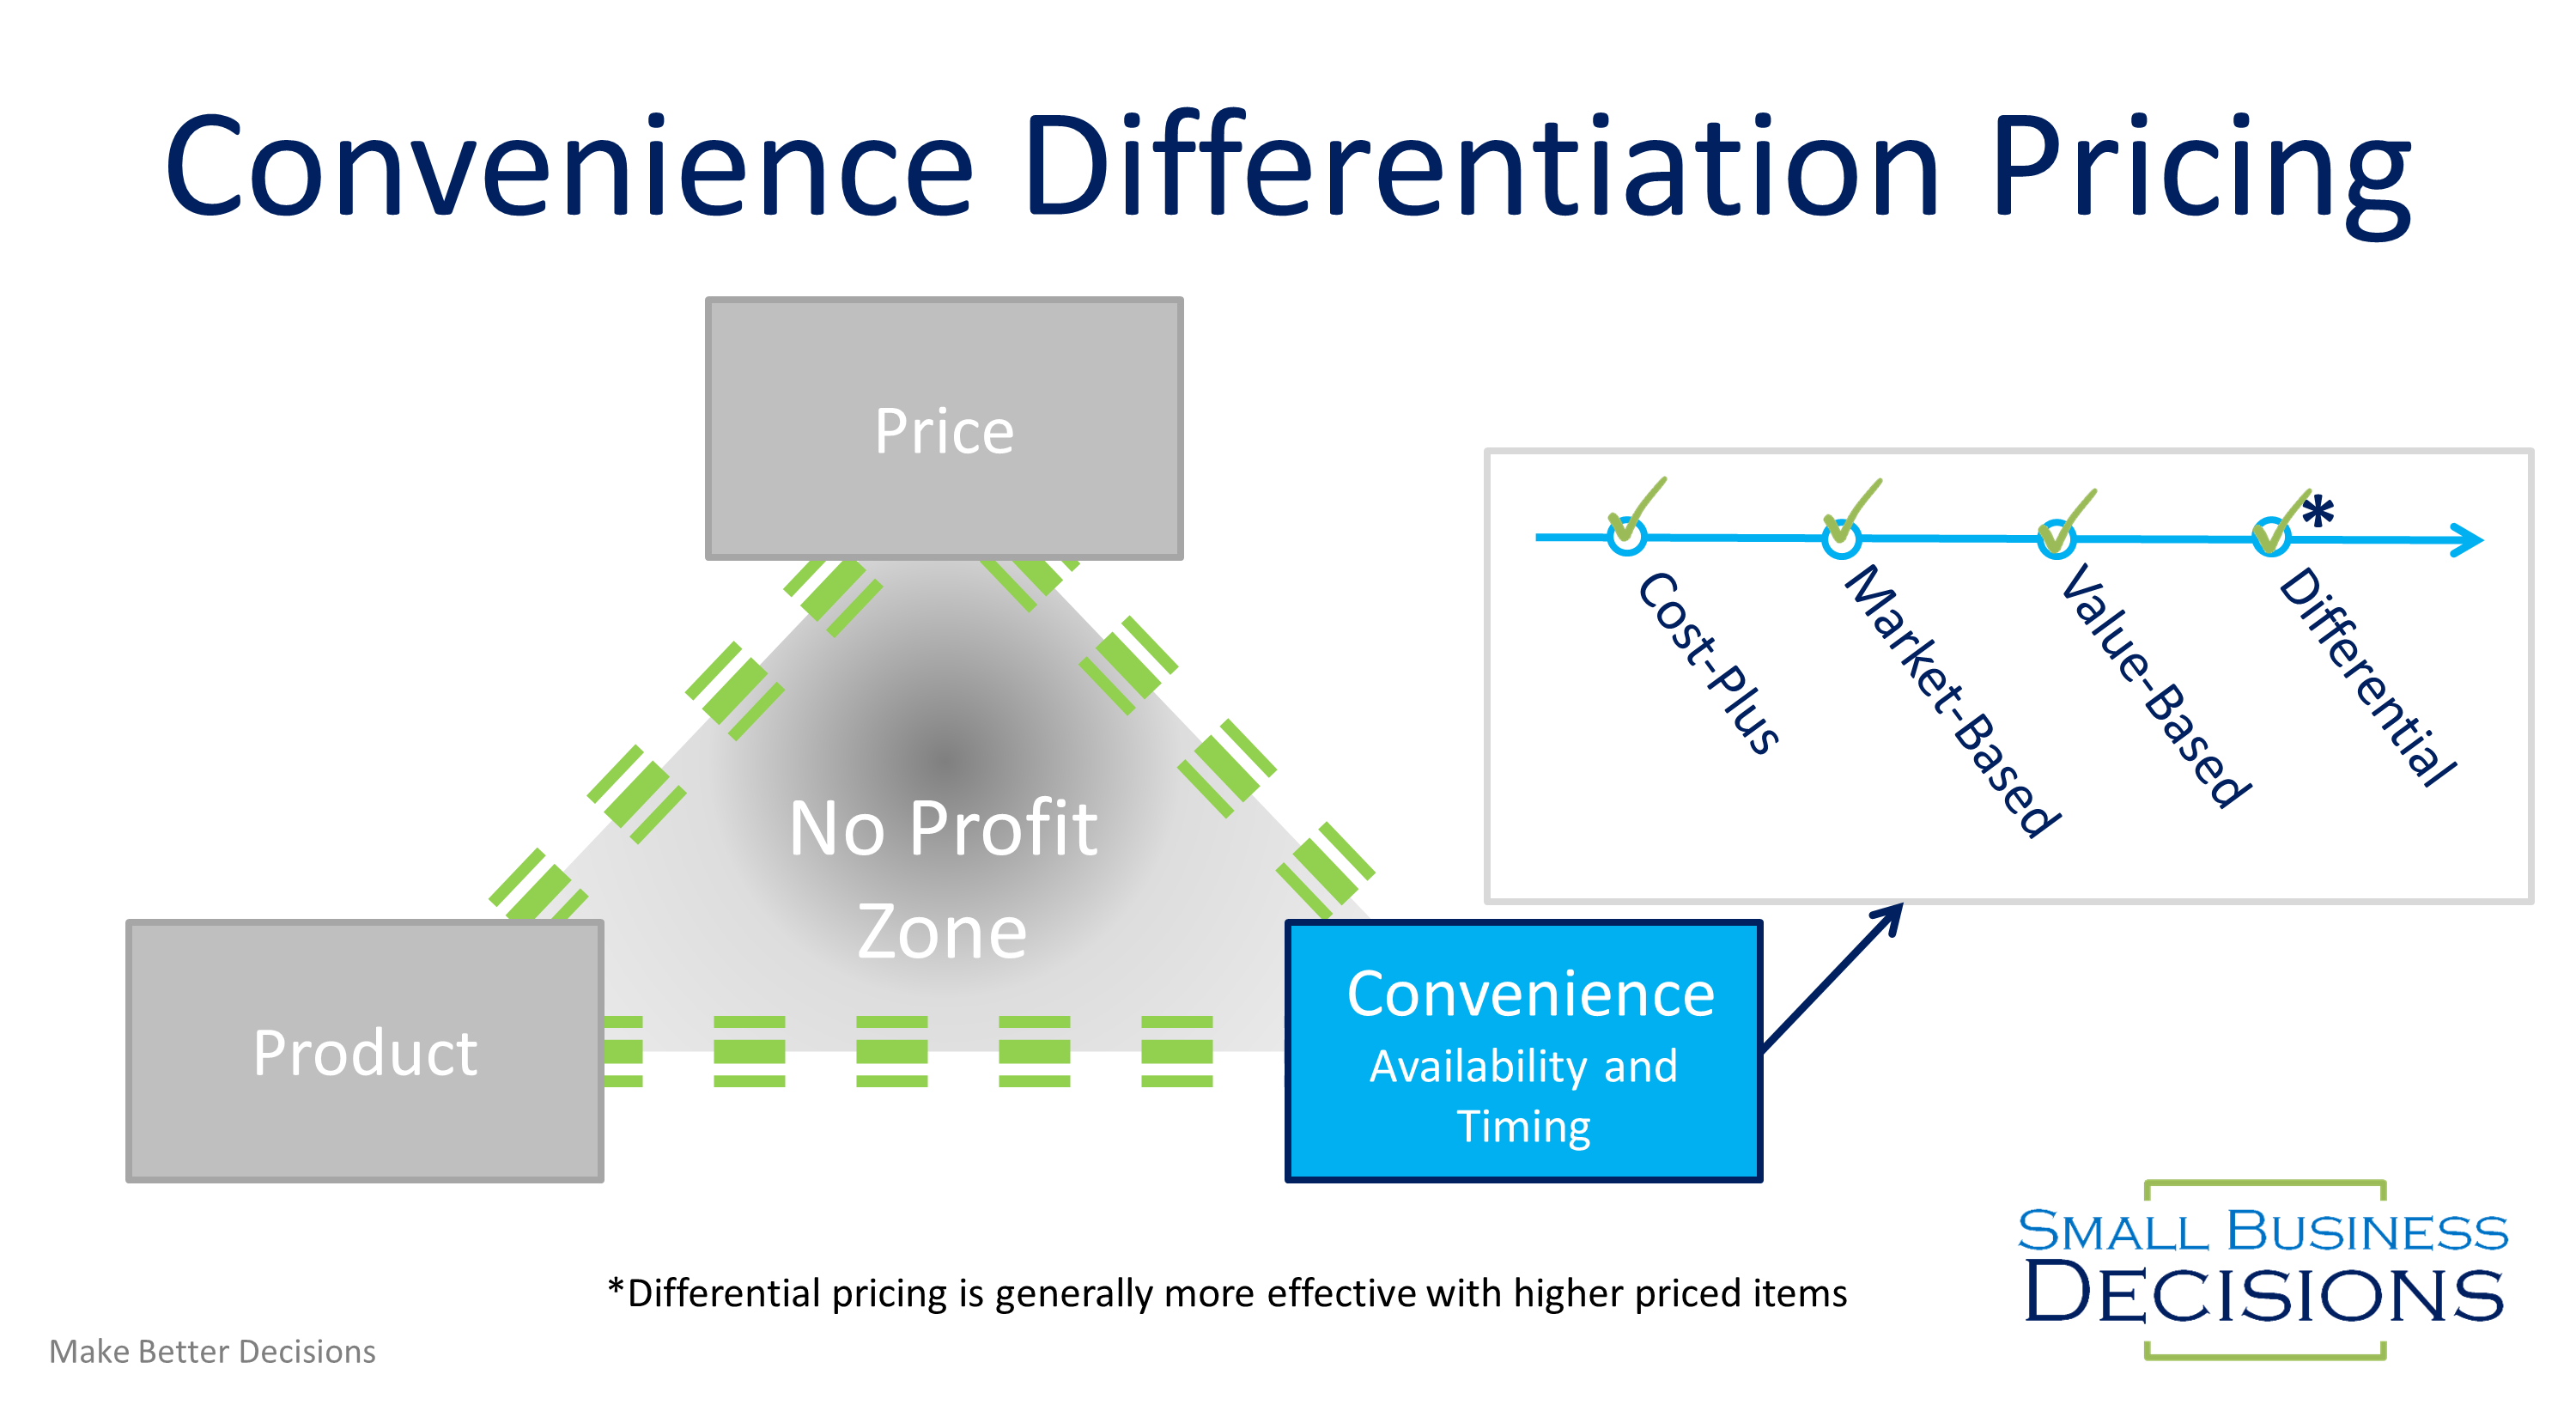 Convenience Differentiation Pricing Roadmap